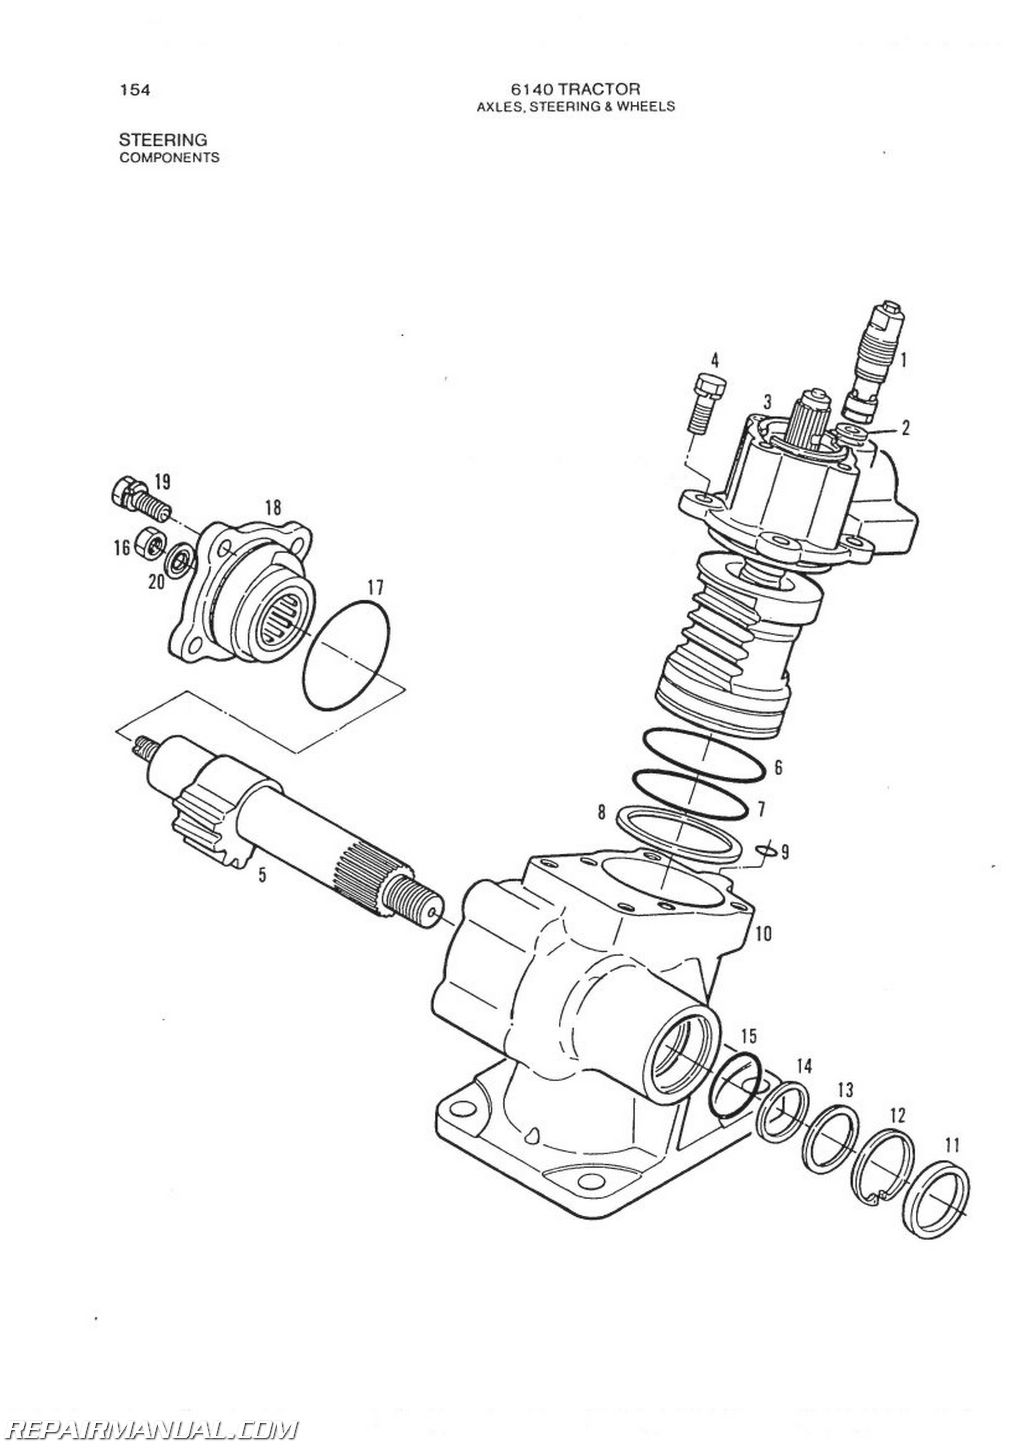 Allis Chalmers Model 6140 2 4 Wd Parts Manual Wiring Diagram Solenoid